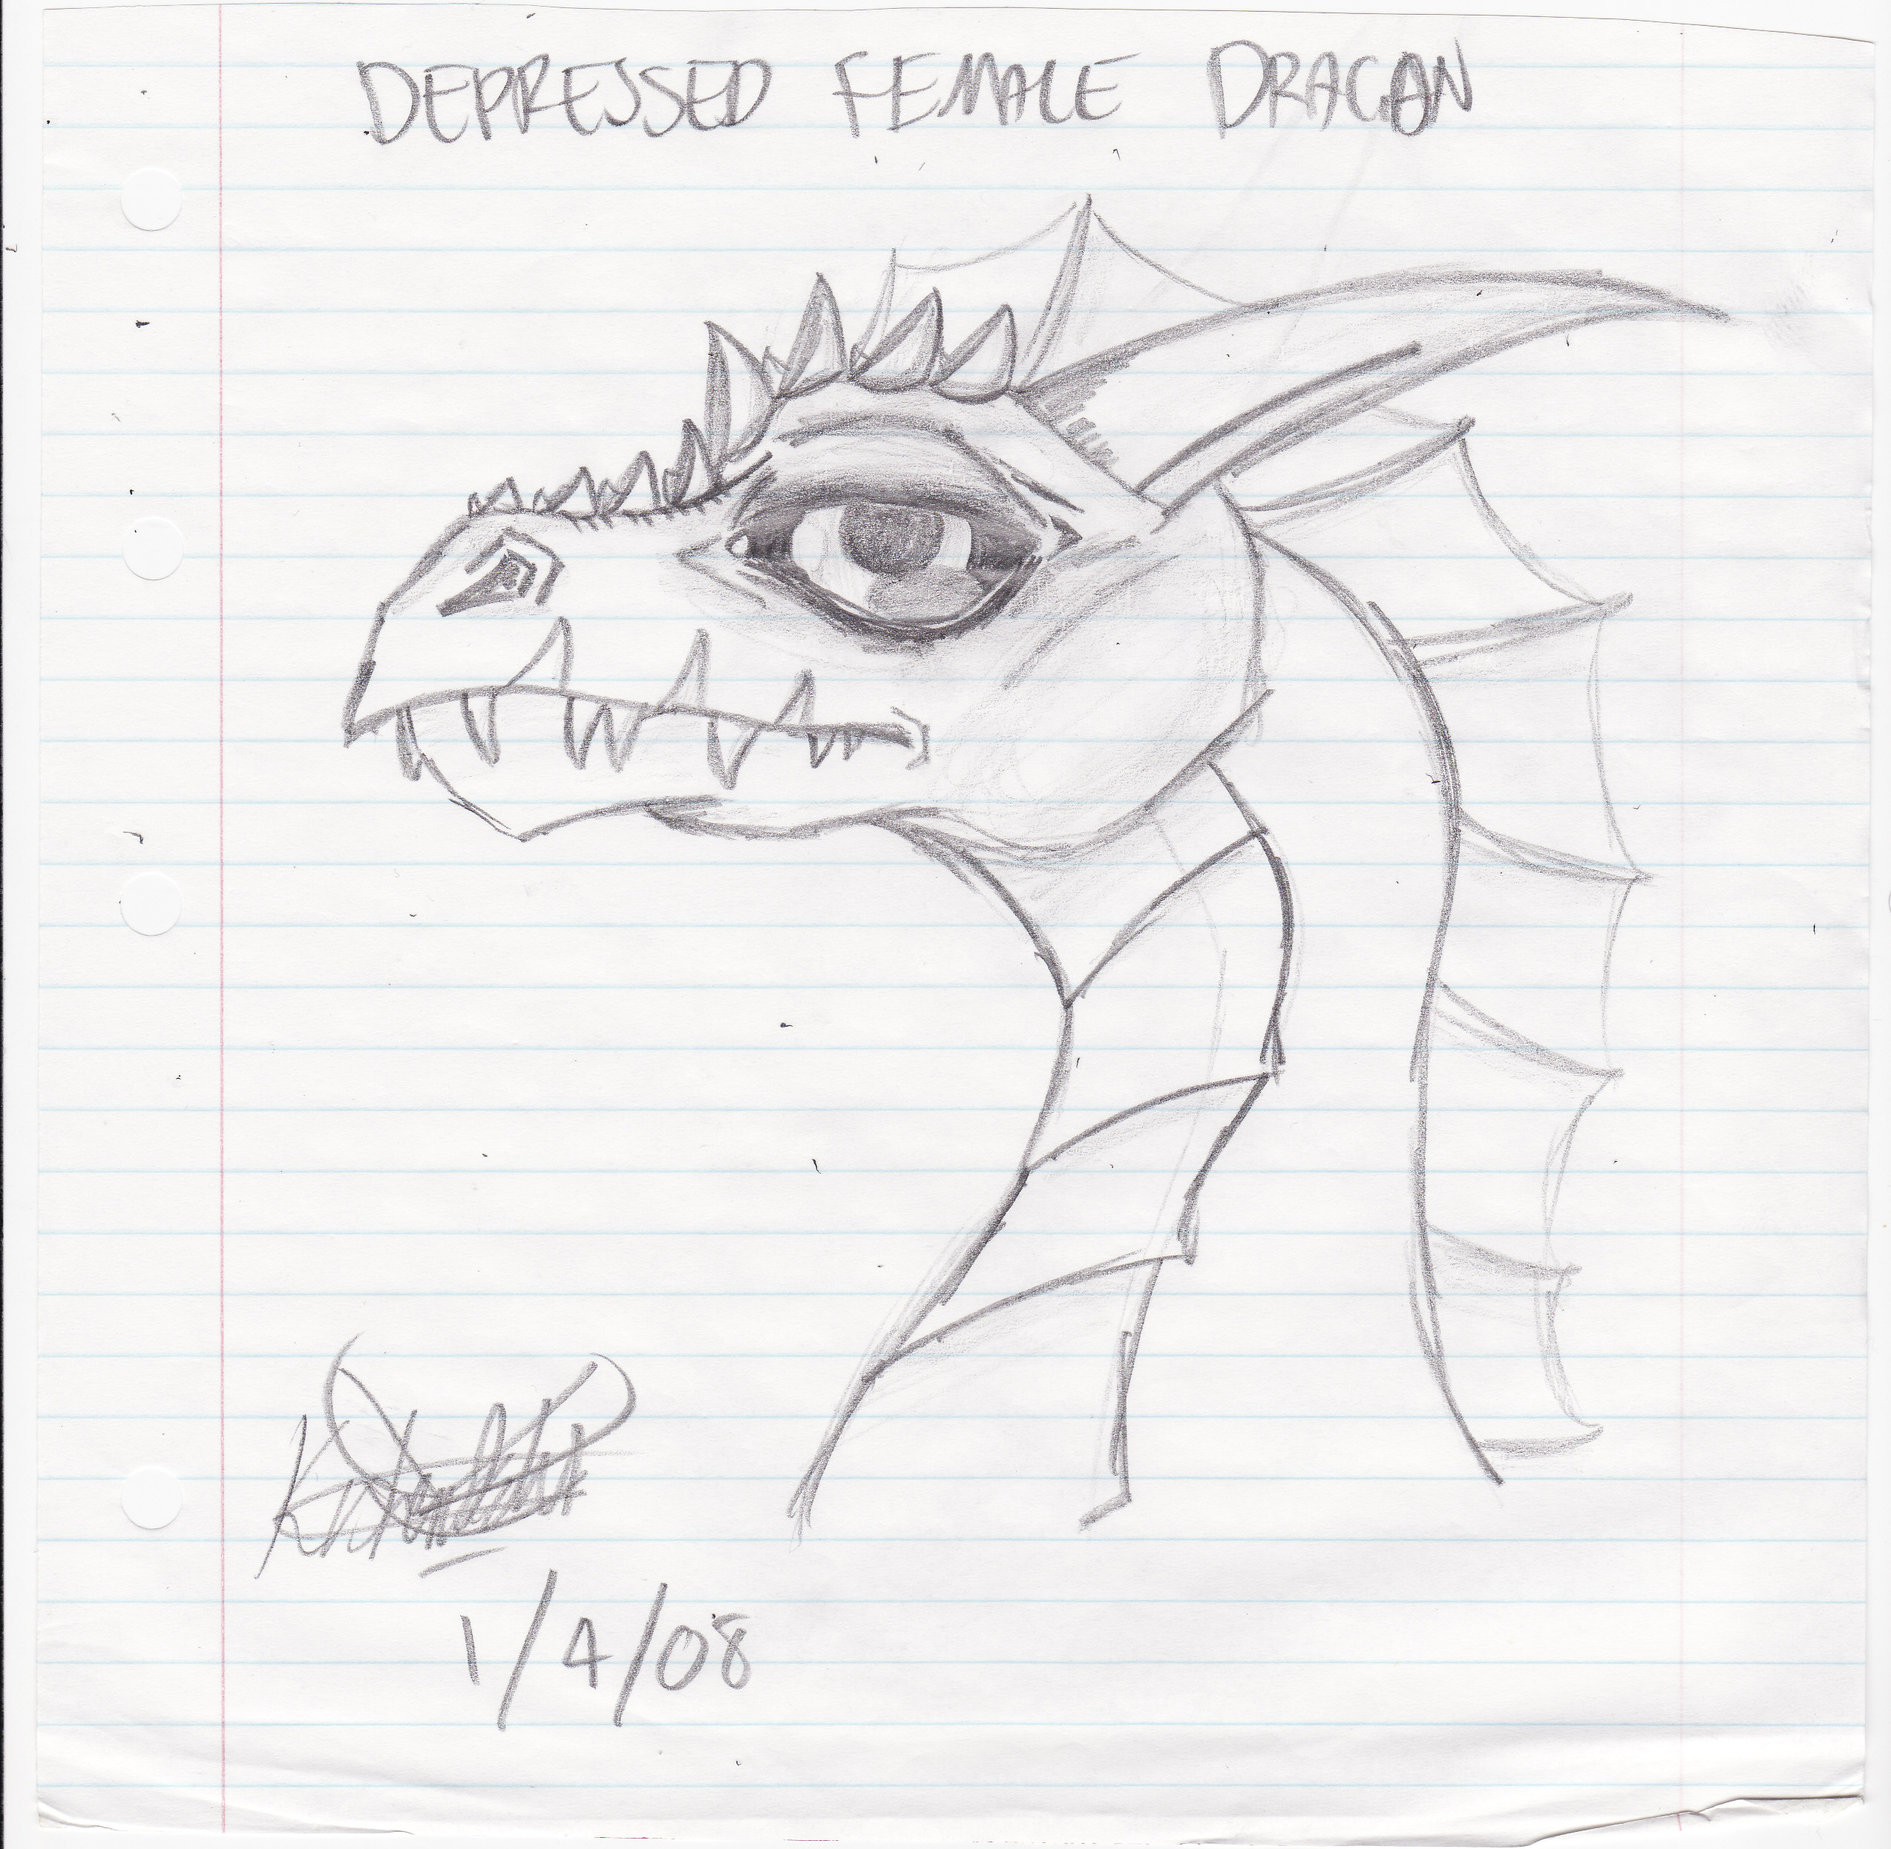 1891x1849 Depressed Female Dragon By Execution Er